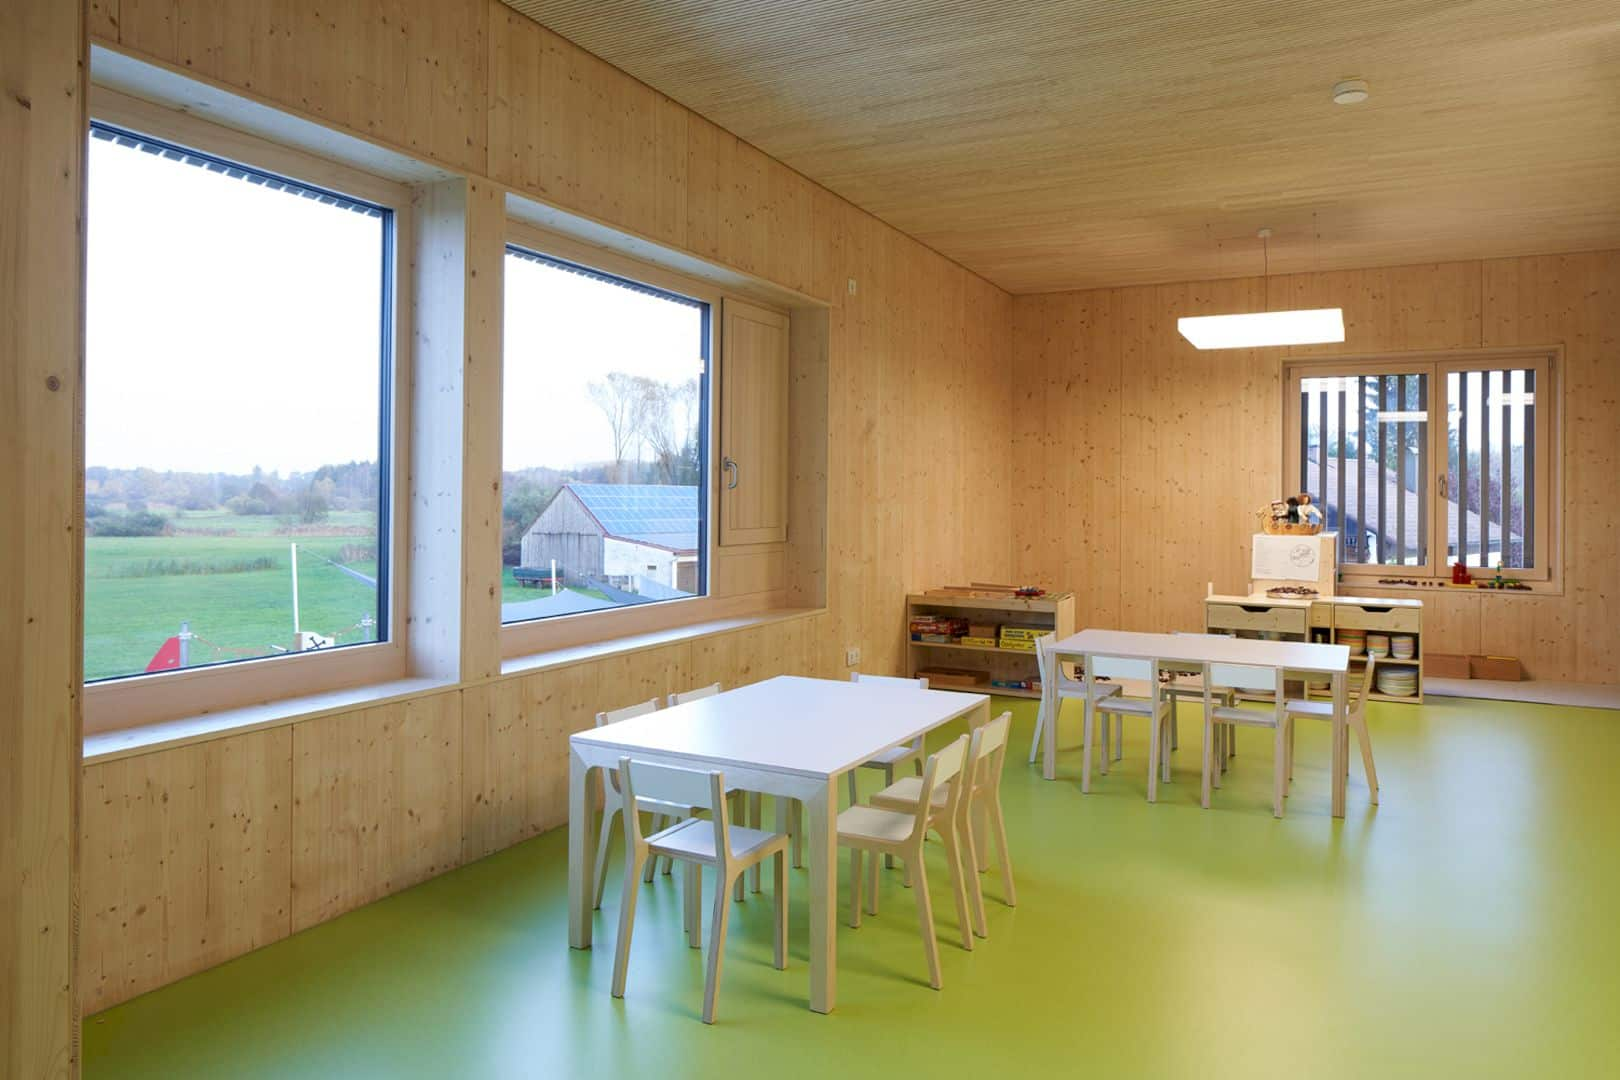 Kindergarten St Laurentius By Goldbrunner Architektur 3